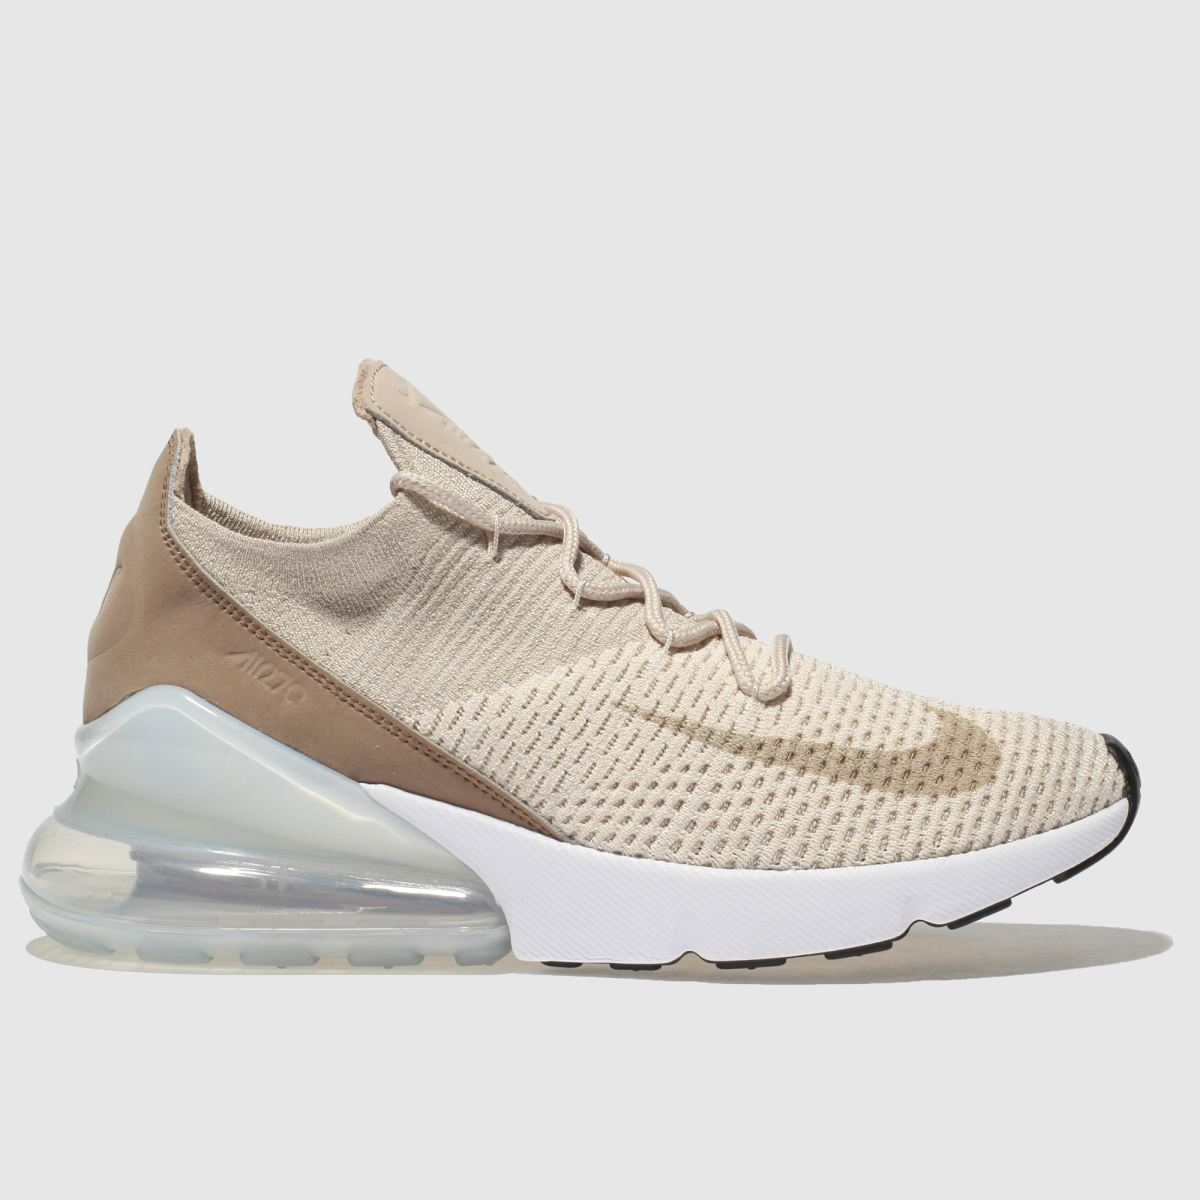 Nike Natural Air Max 270 Flyknit Trainers